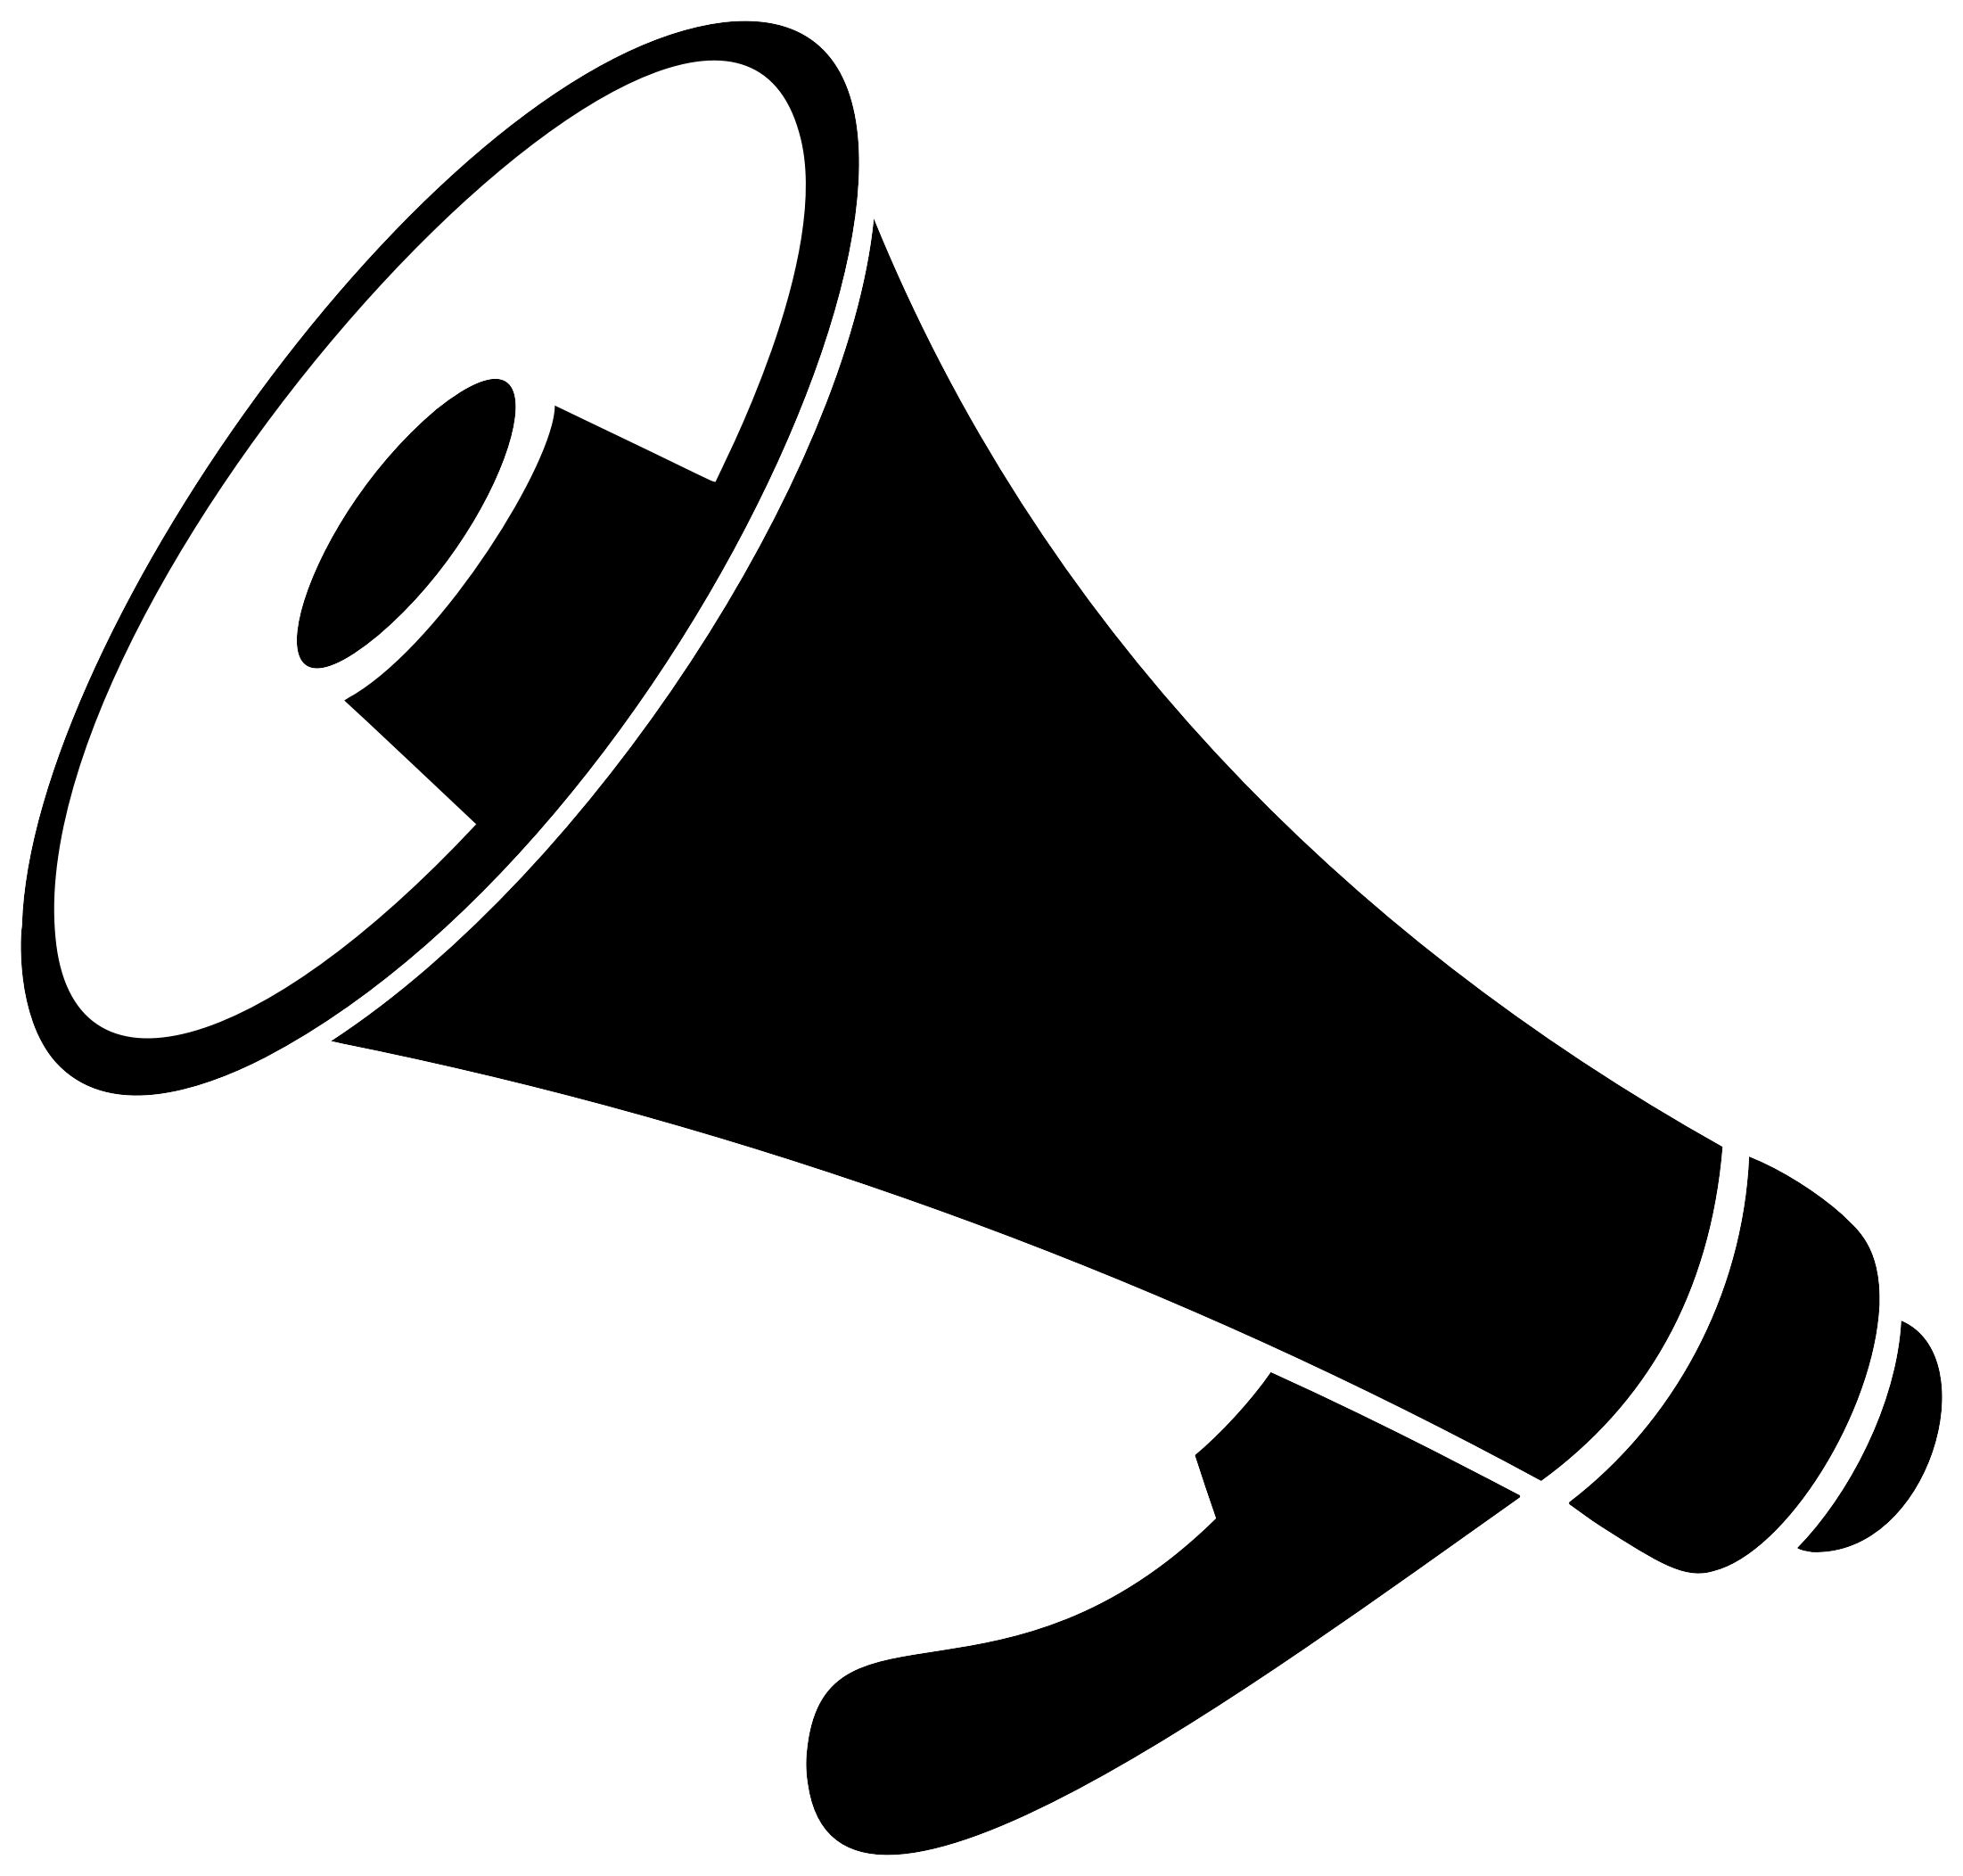 Bullhorn icon icons free. Bull horn png picture free stock